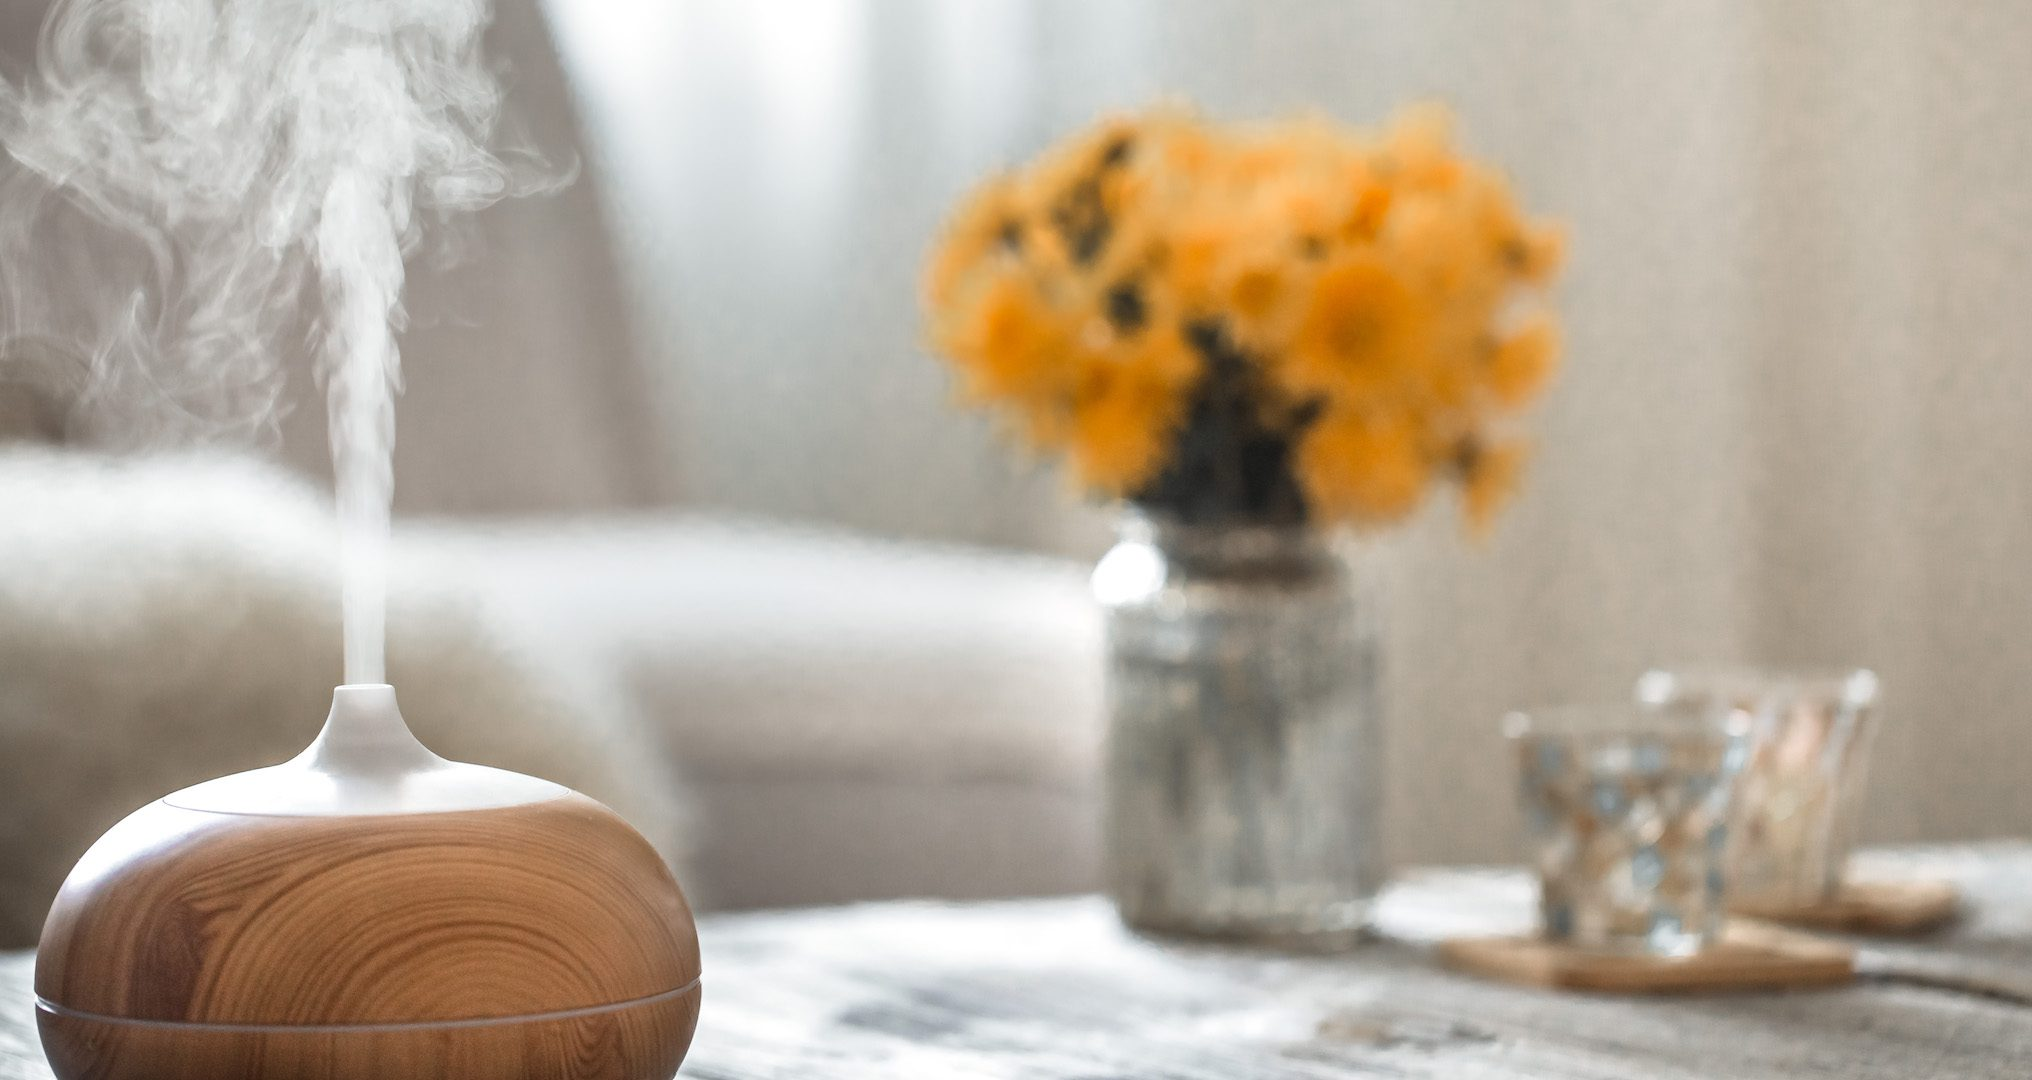 brown wooden humidifier with steam coming out on a table with flowers and candles